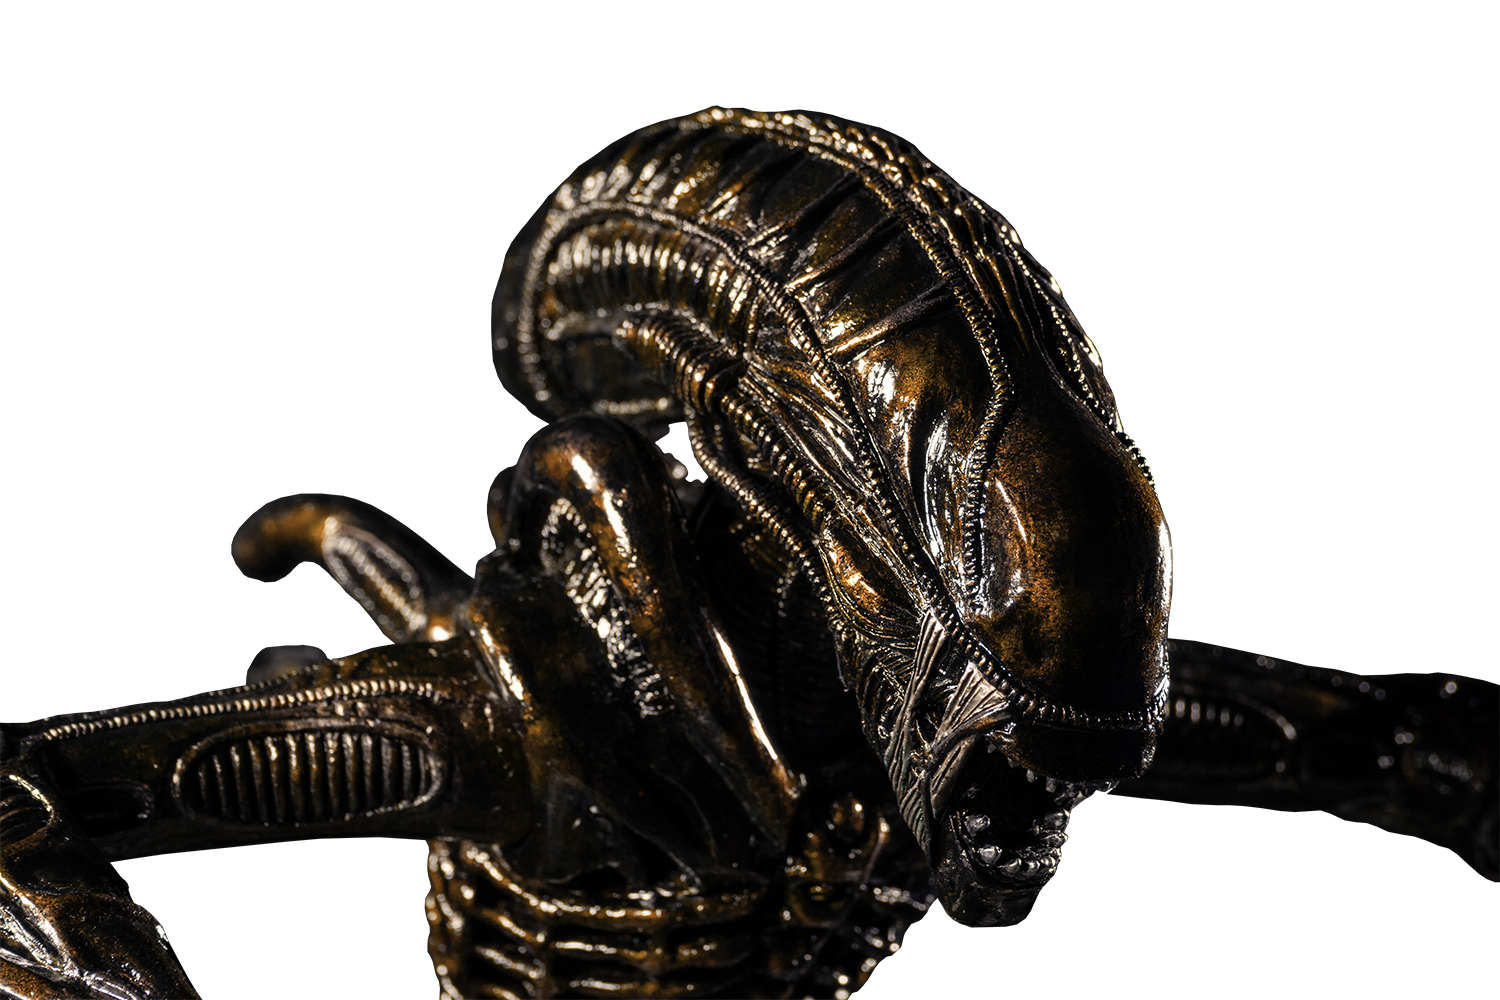 IKO1605-Alien-in-Water-Statue-New-Paint-14-246.png